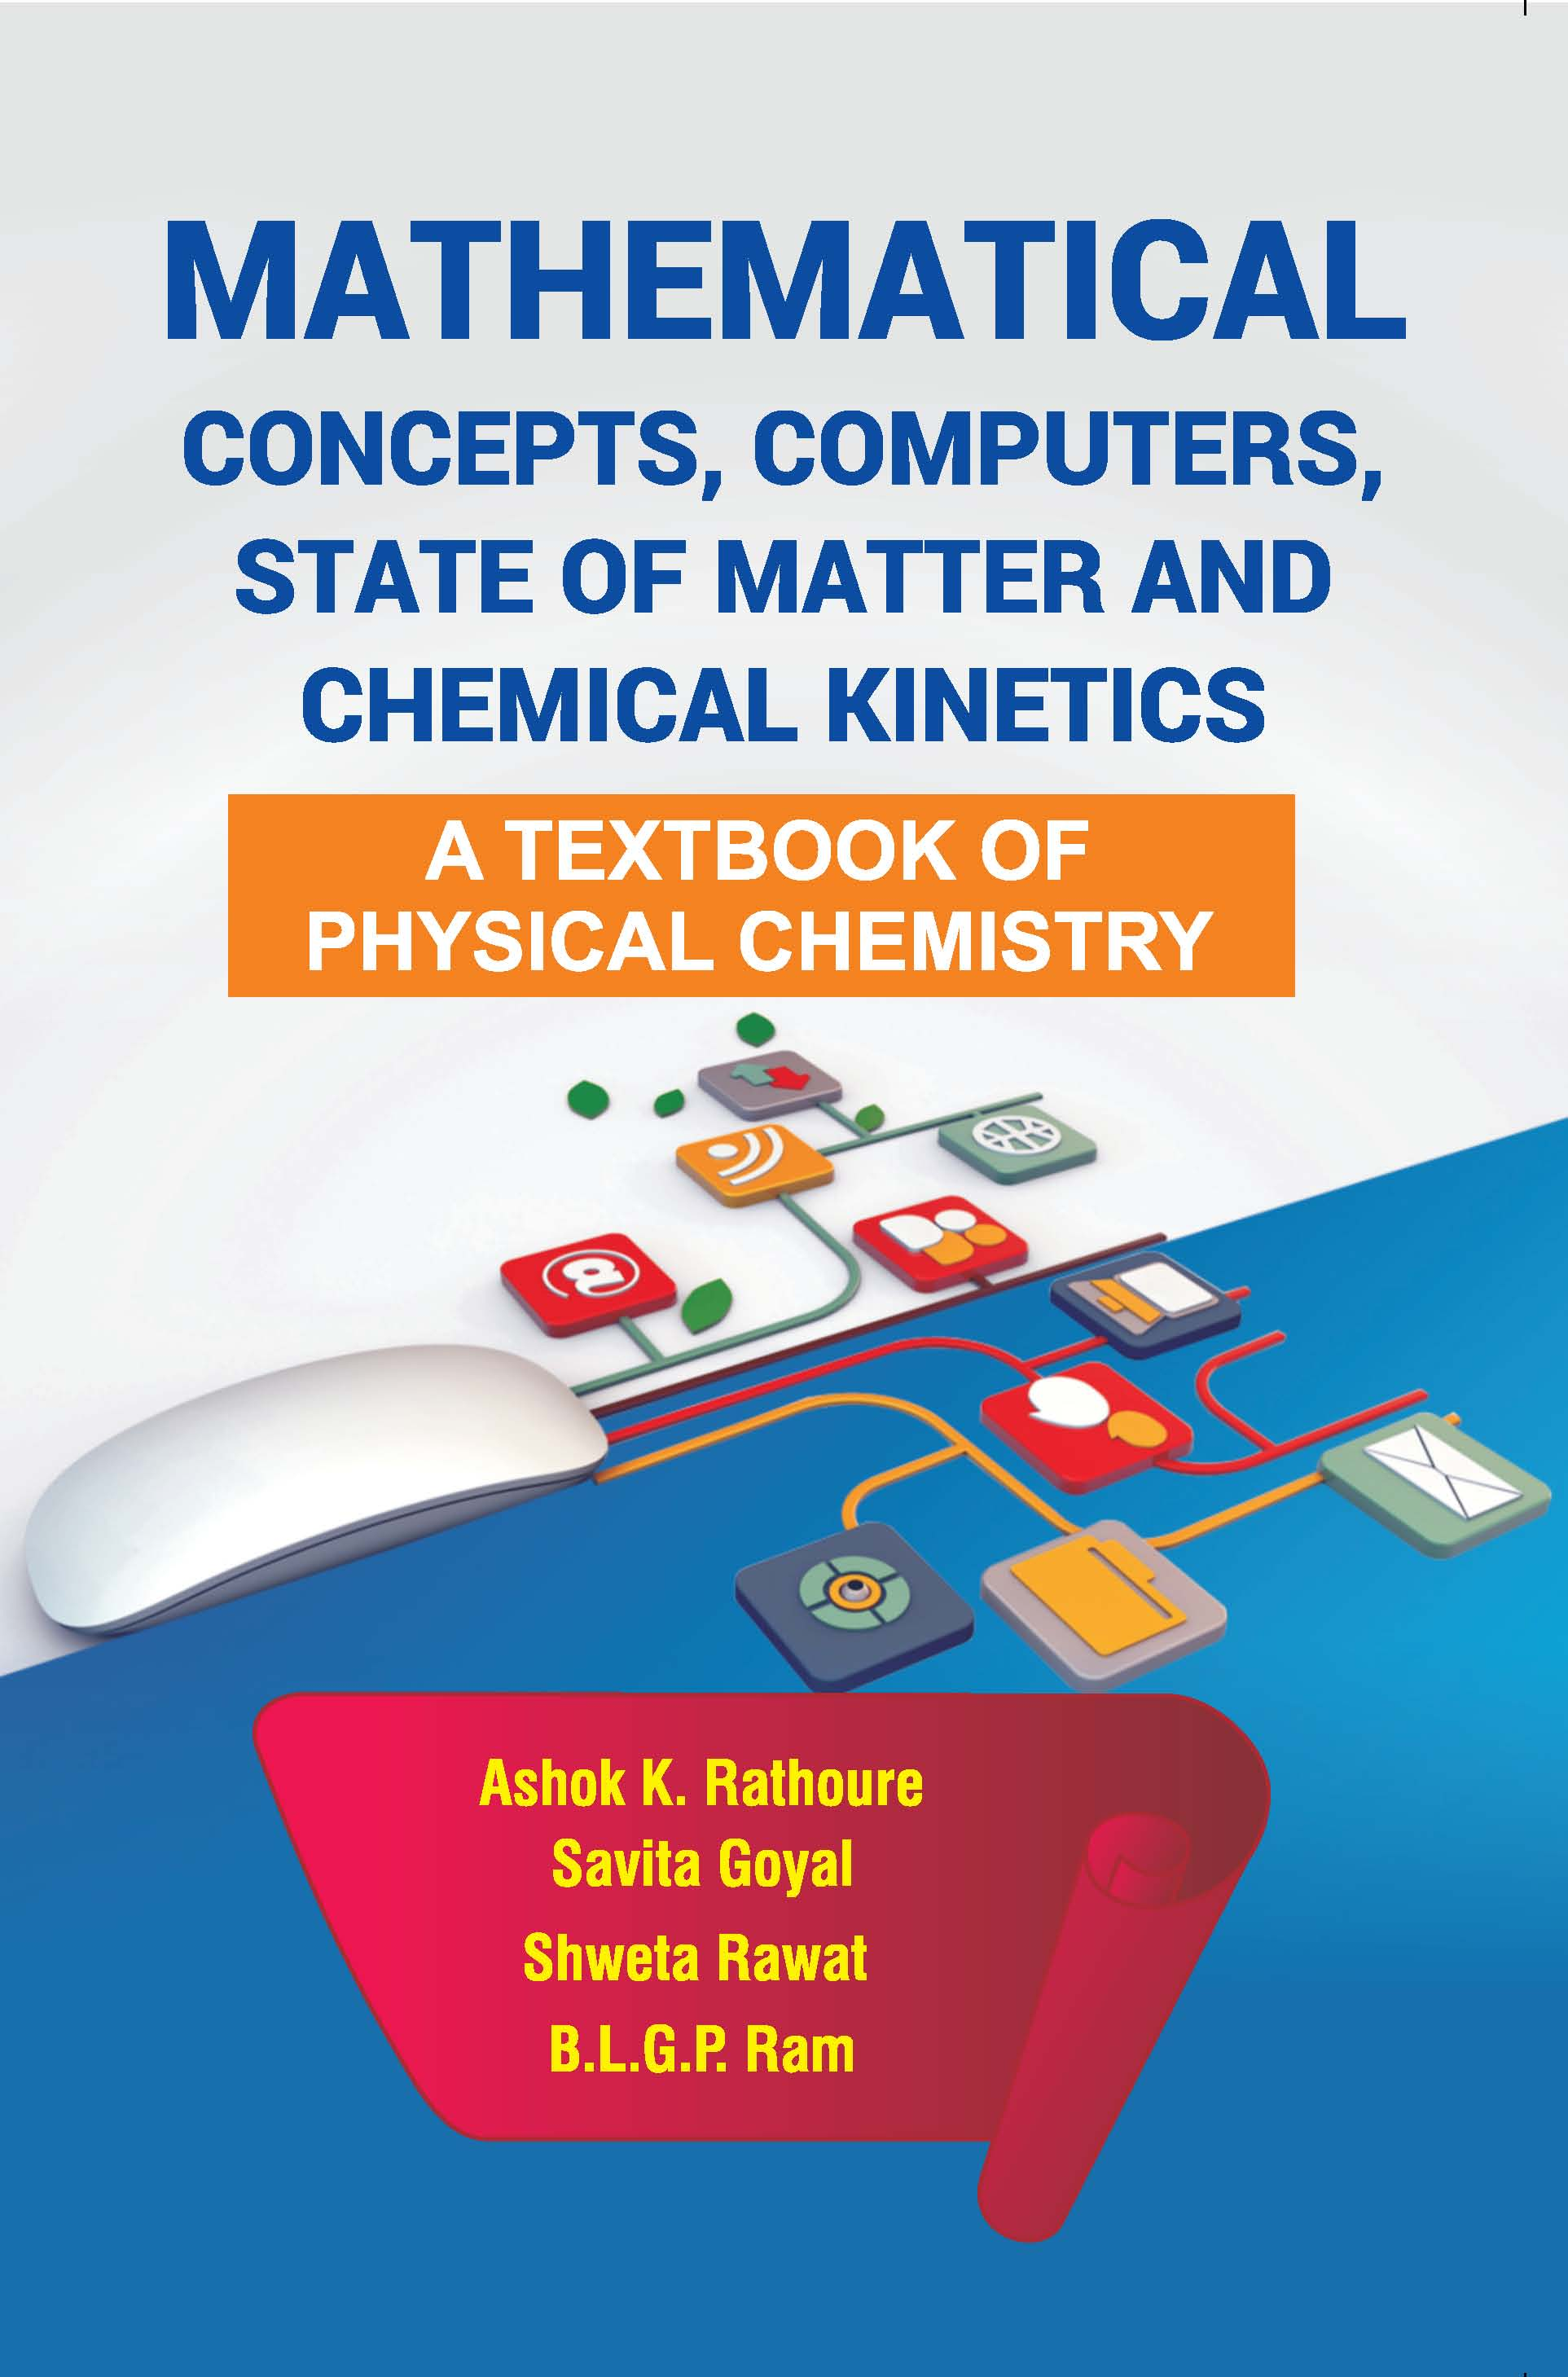 Mathematical Concepts, Computers, State of Matter and Chemical Kinetics